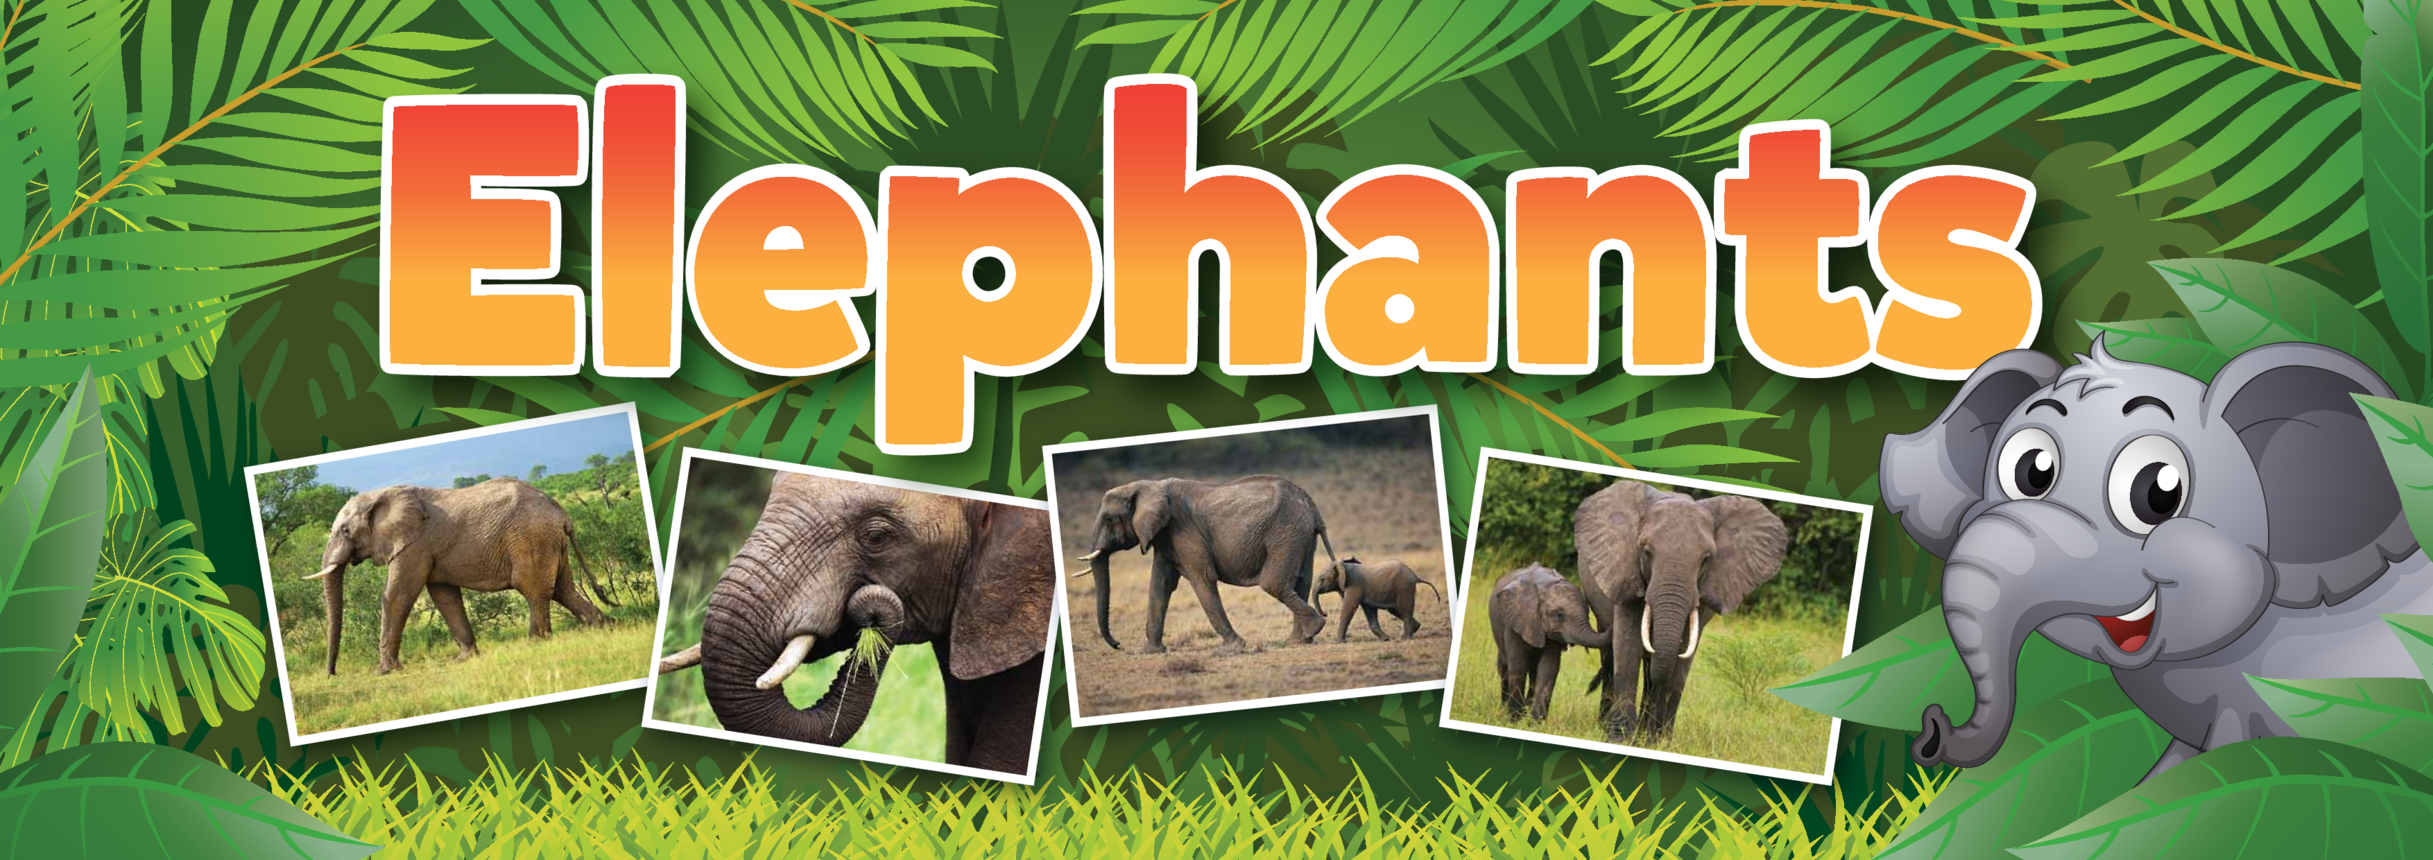 Elephants Wall Display Banner